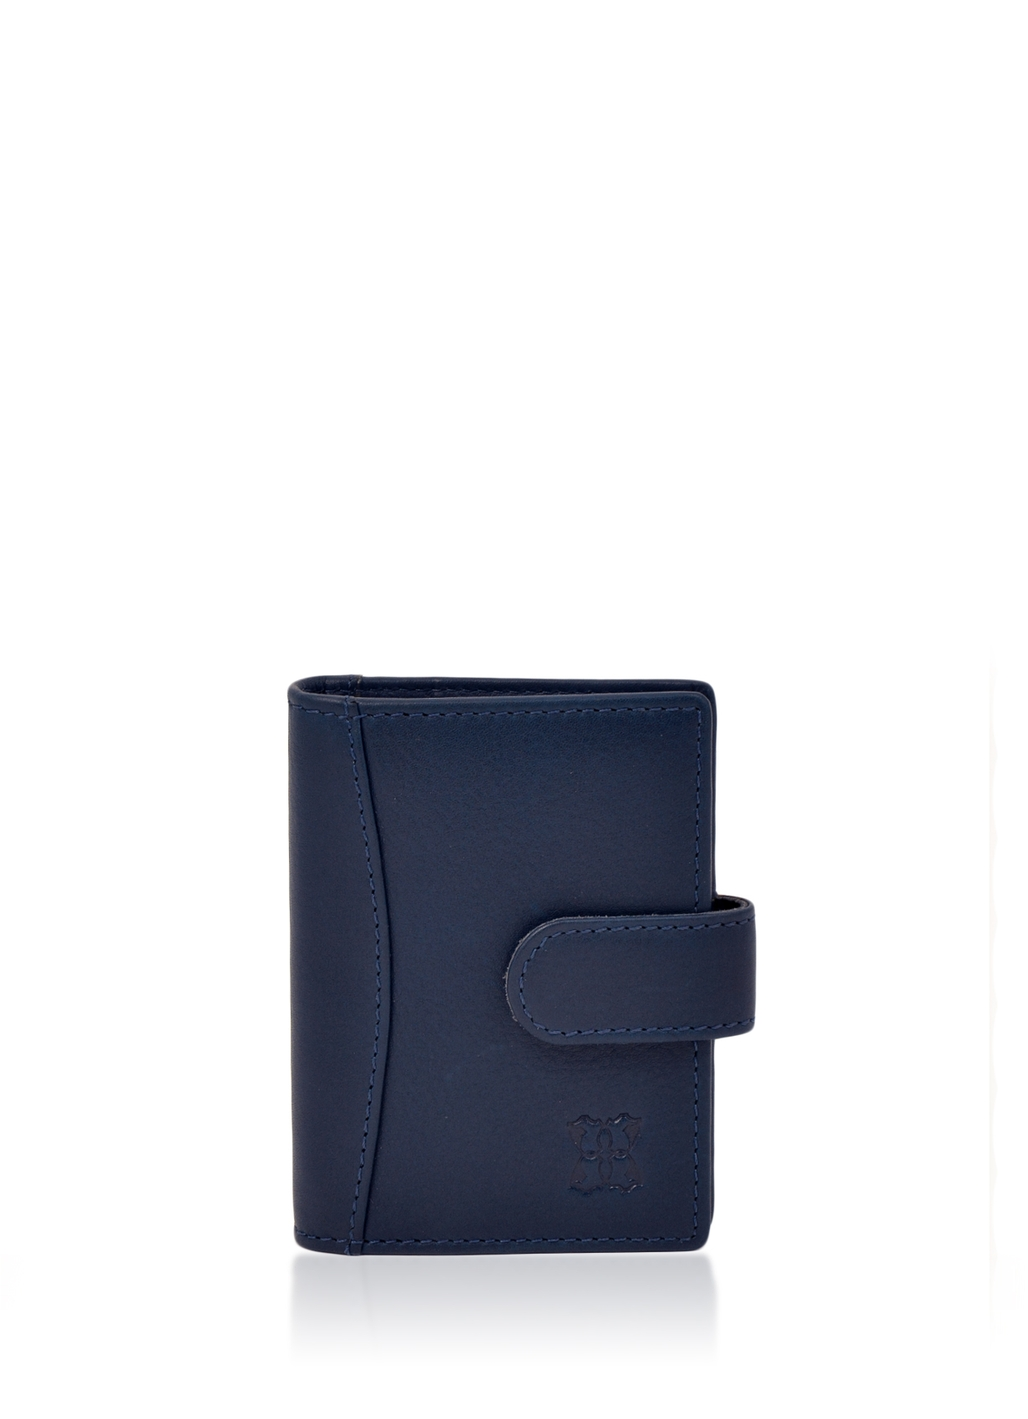 Windermere Leather Card Holder in Navy